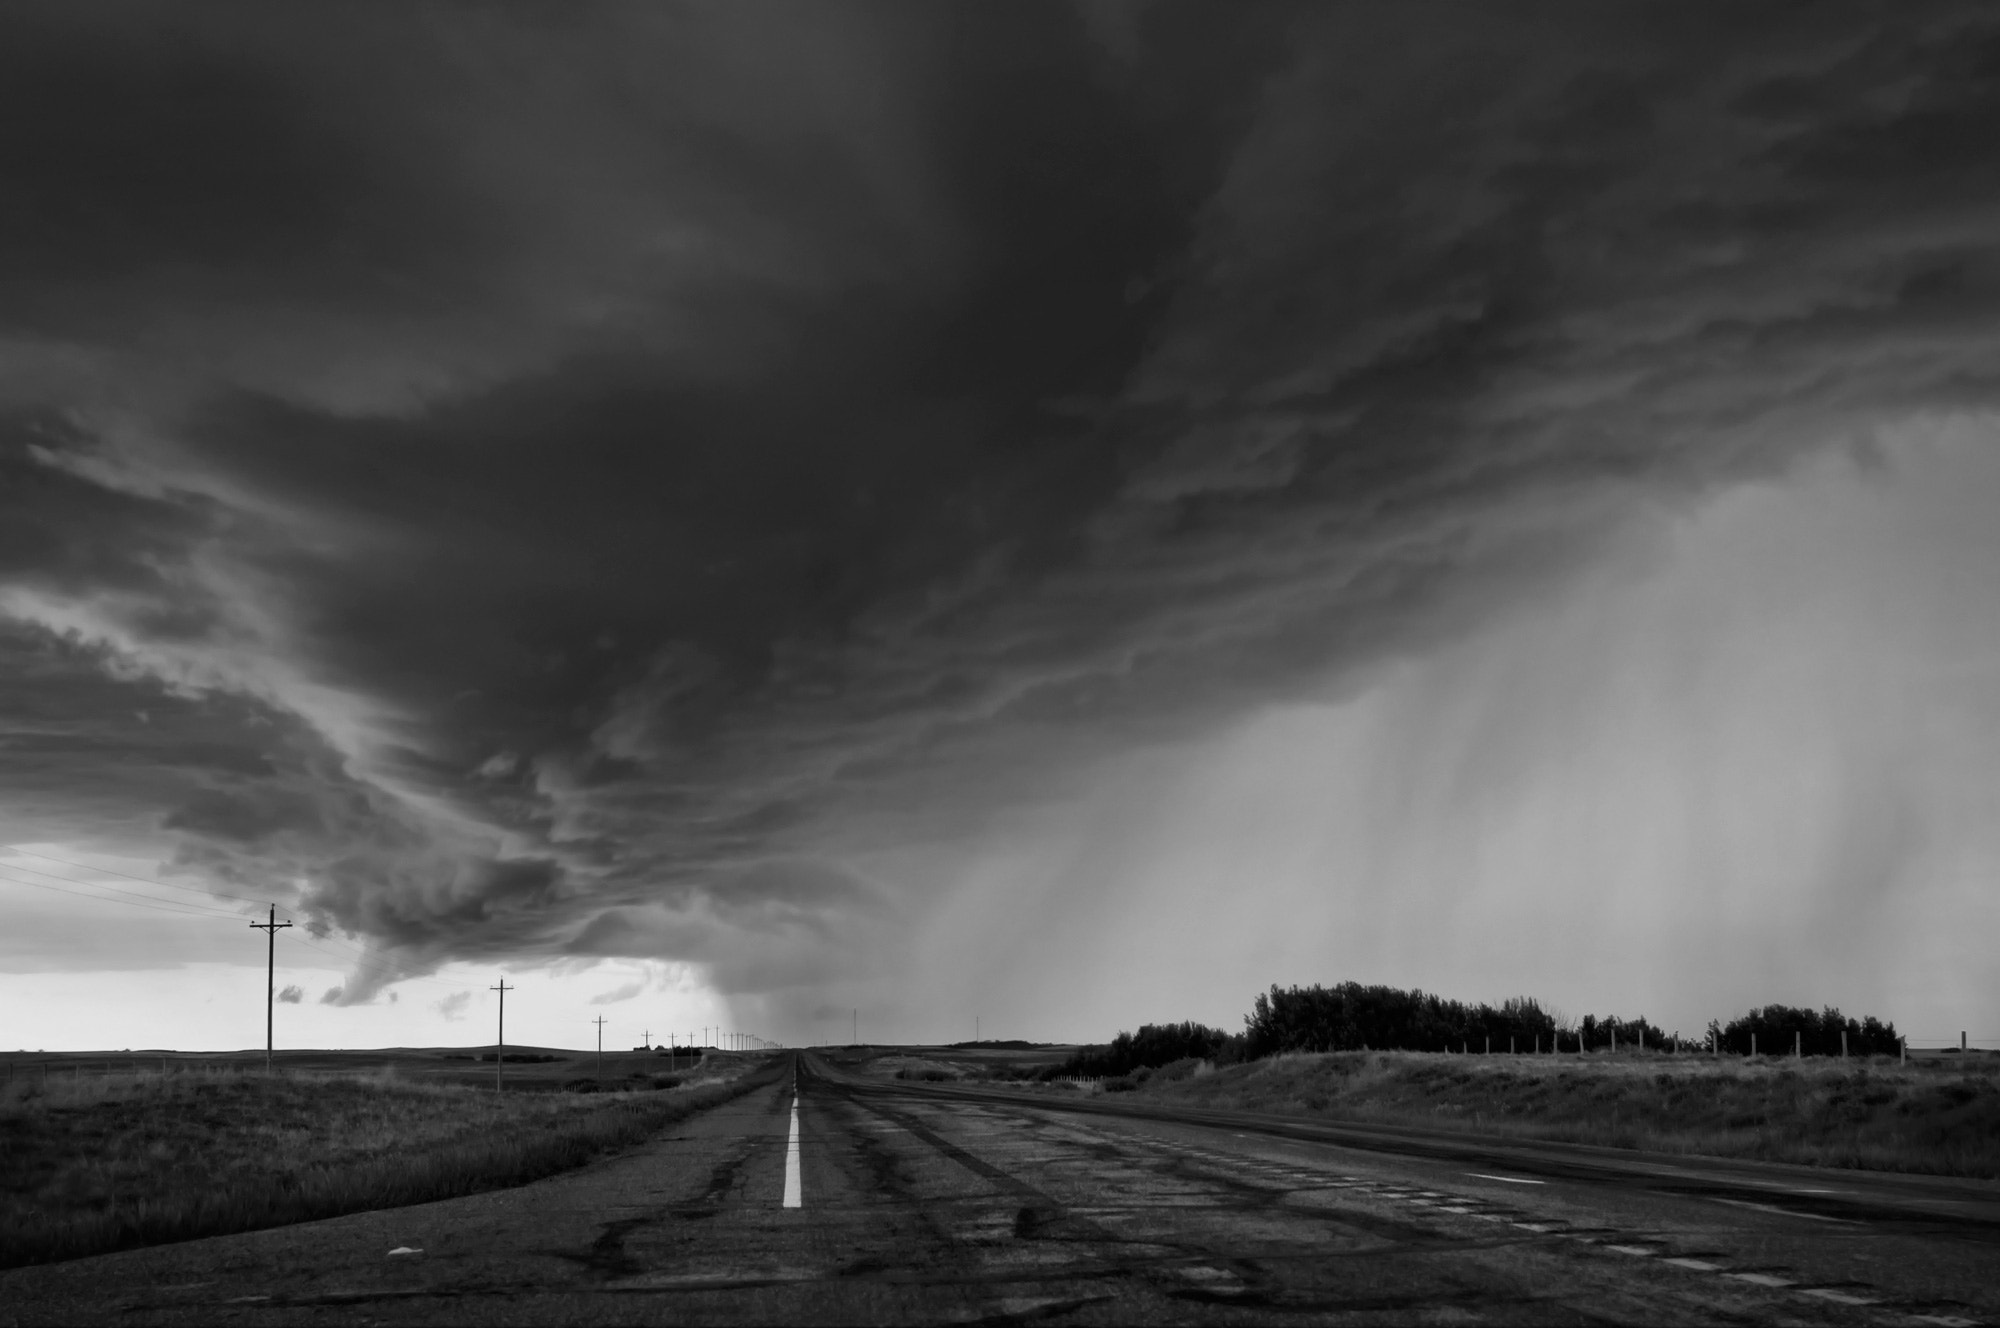 Photograph Edge of the Storm by Carla Stringari Pudler on 500px